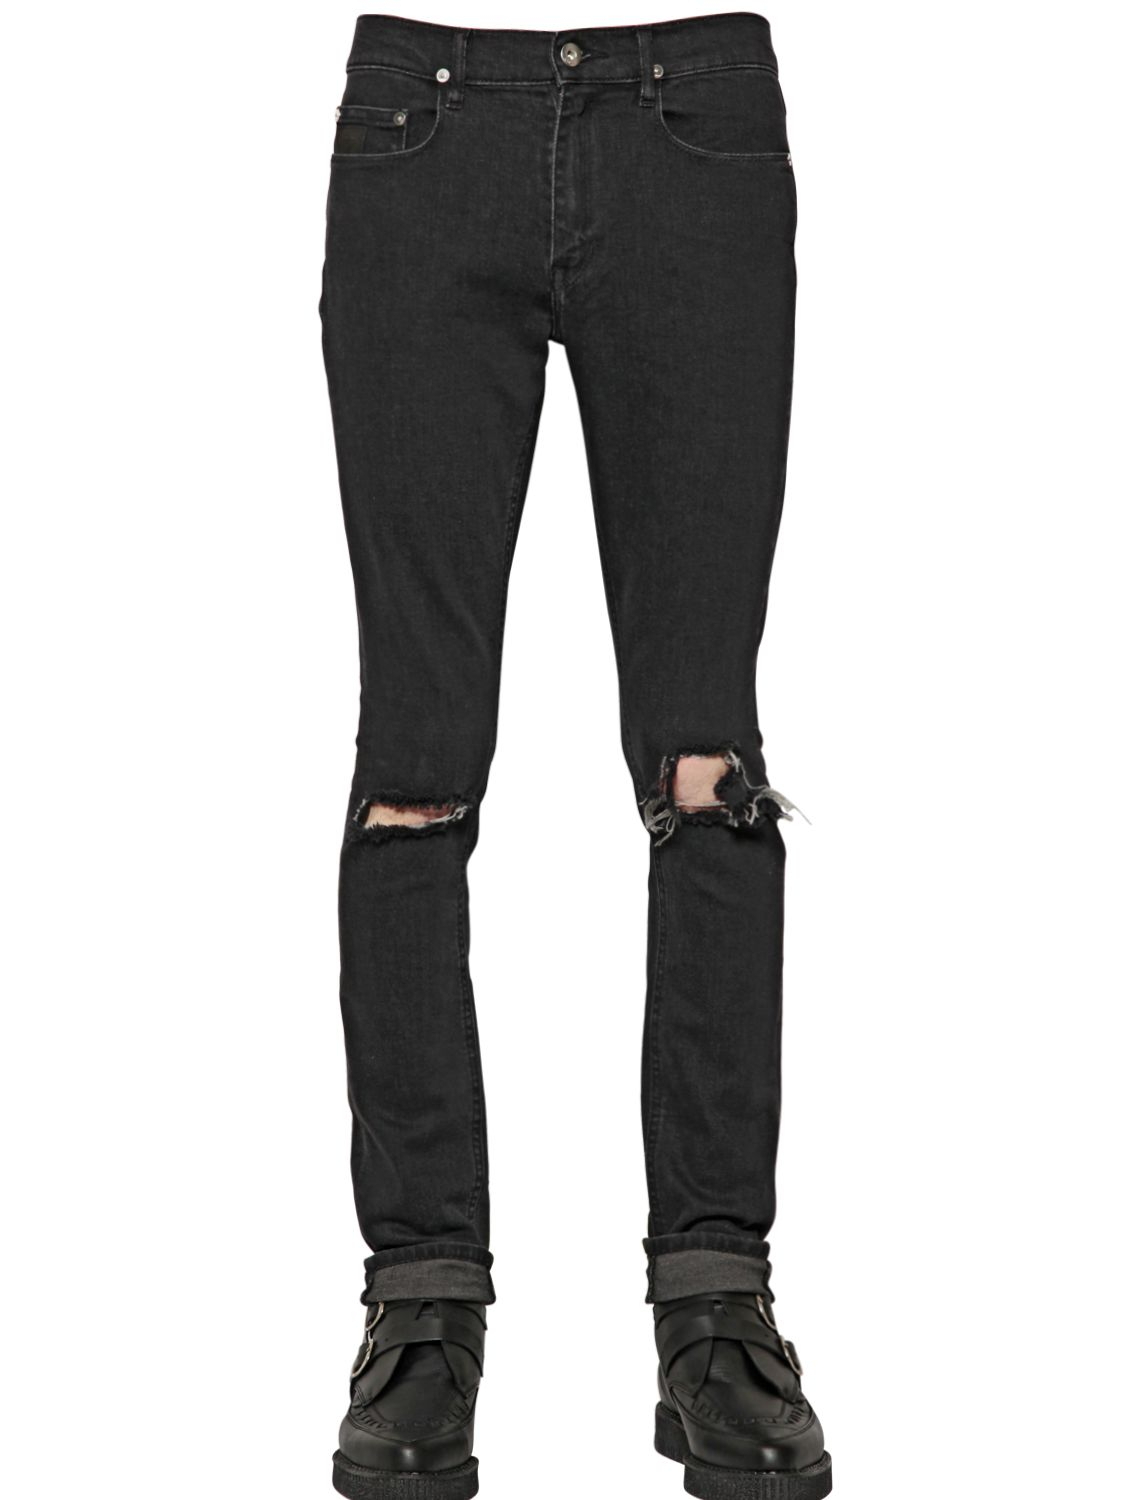 Cheap Diesel Mens Jeans